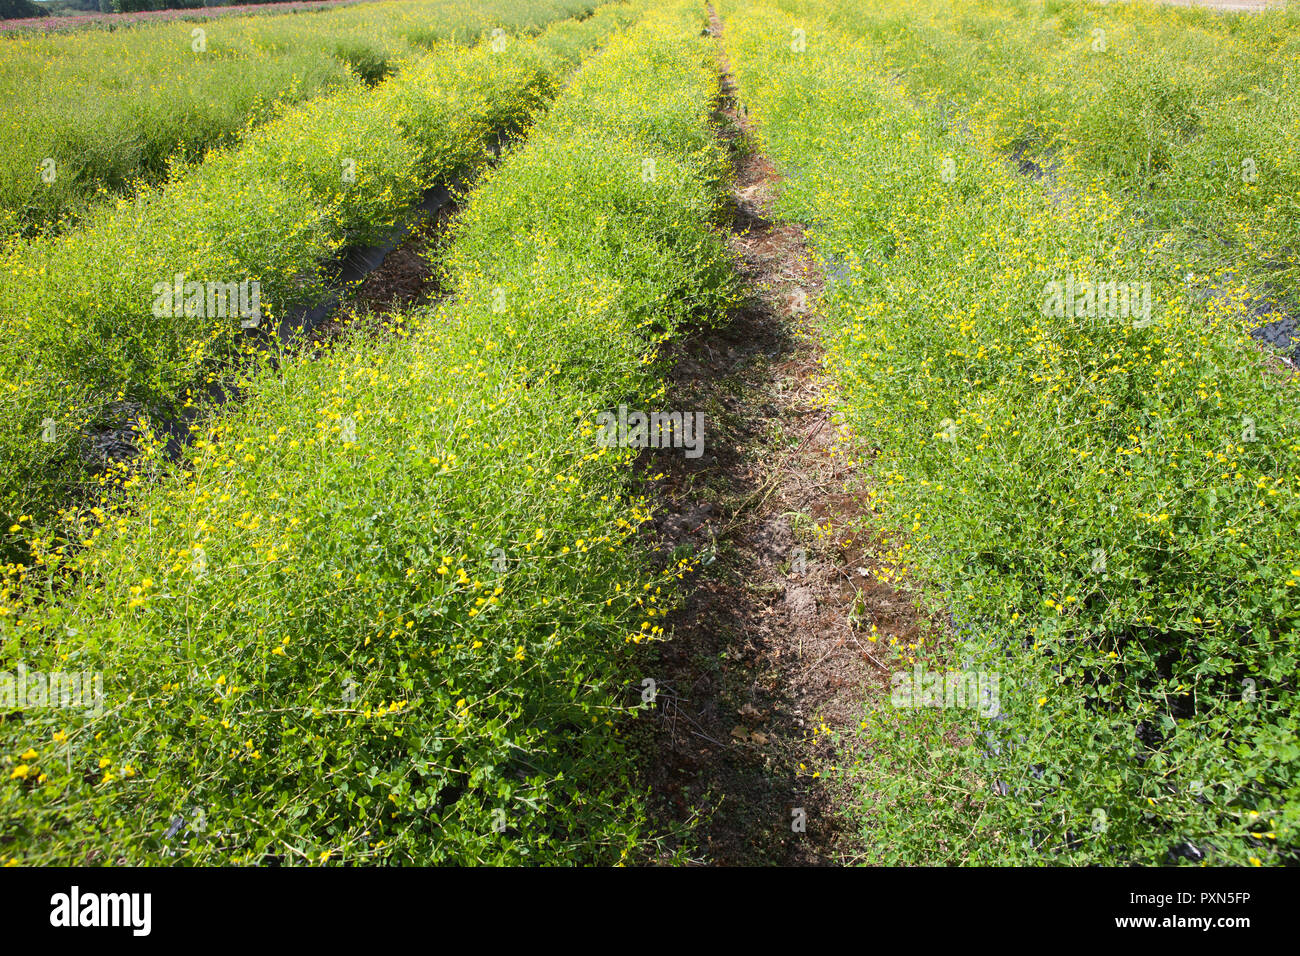 Melilotus as green manure on an Asparagus field, Muensterland; Germany, Europe Stock Photo